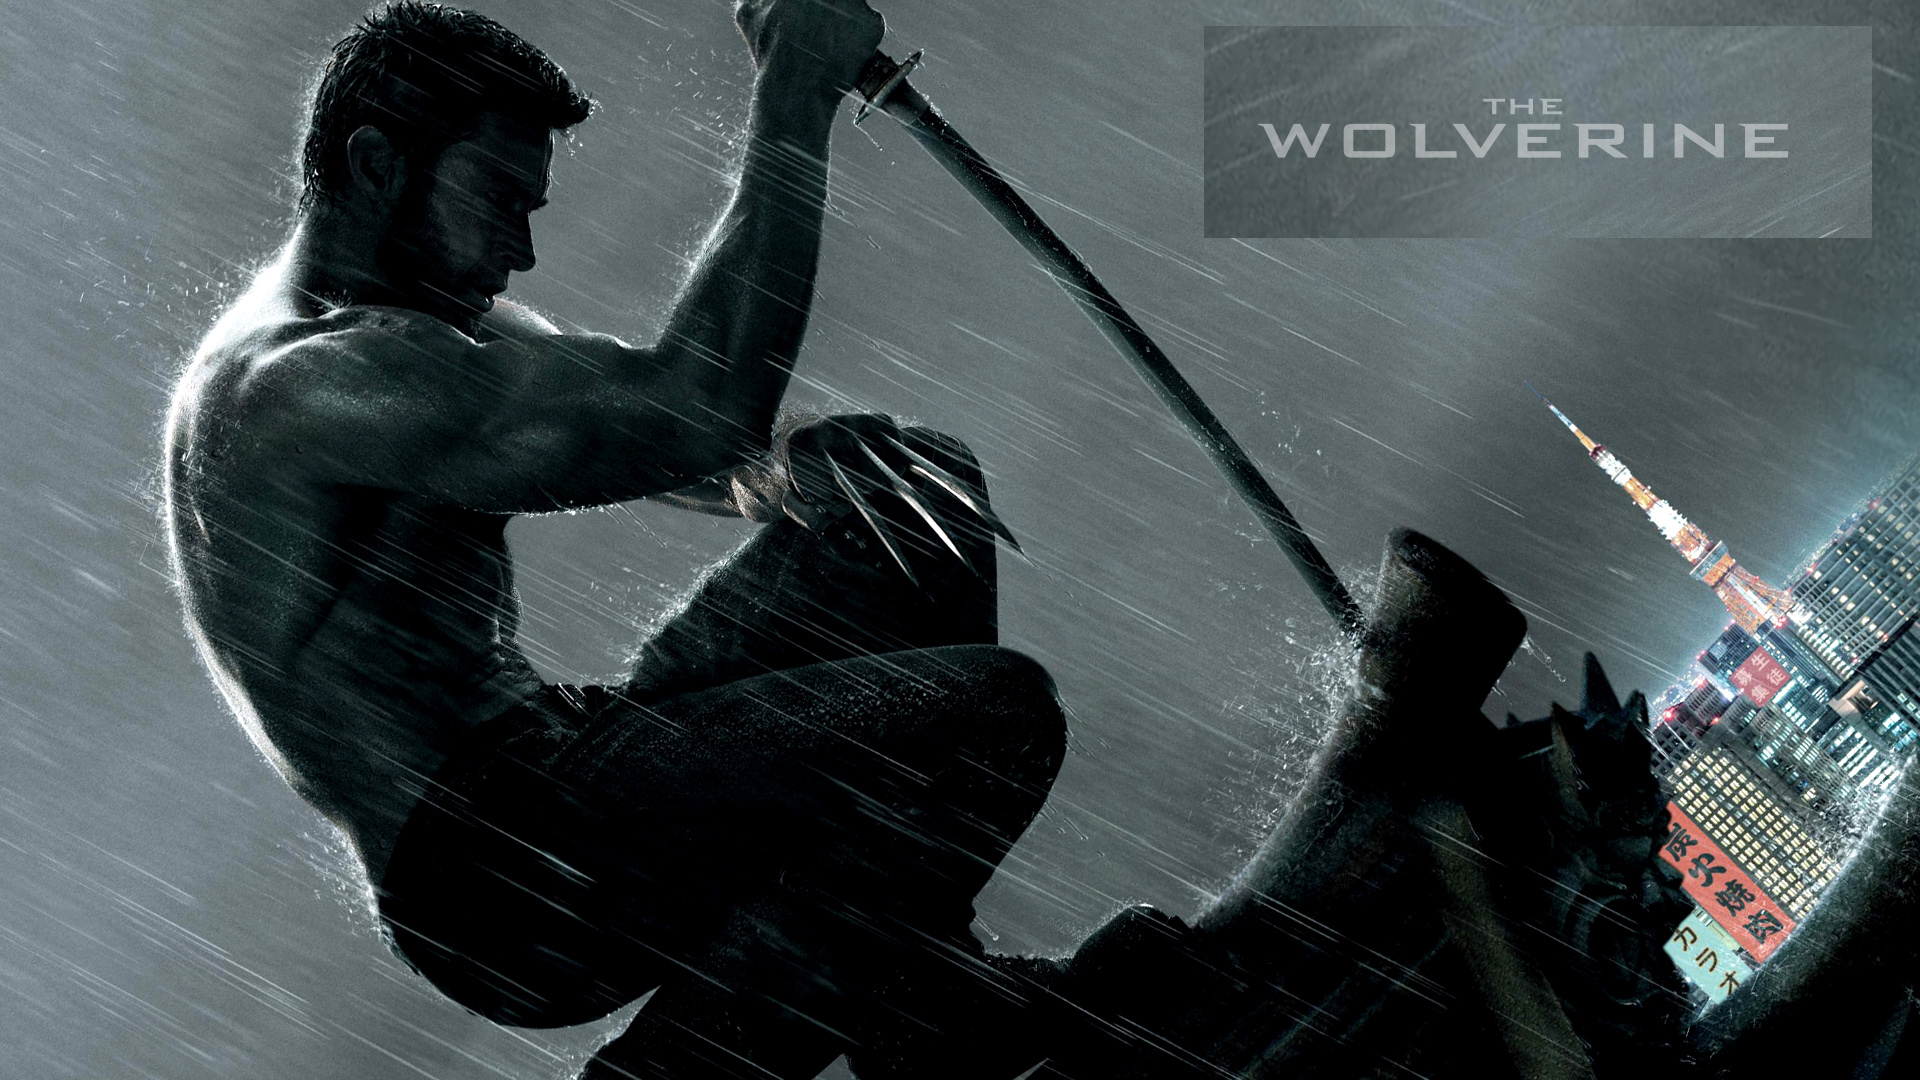 Wolverine Hd Wallpapers P Images Pic Mch0117126 Dzbc Org